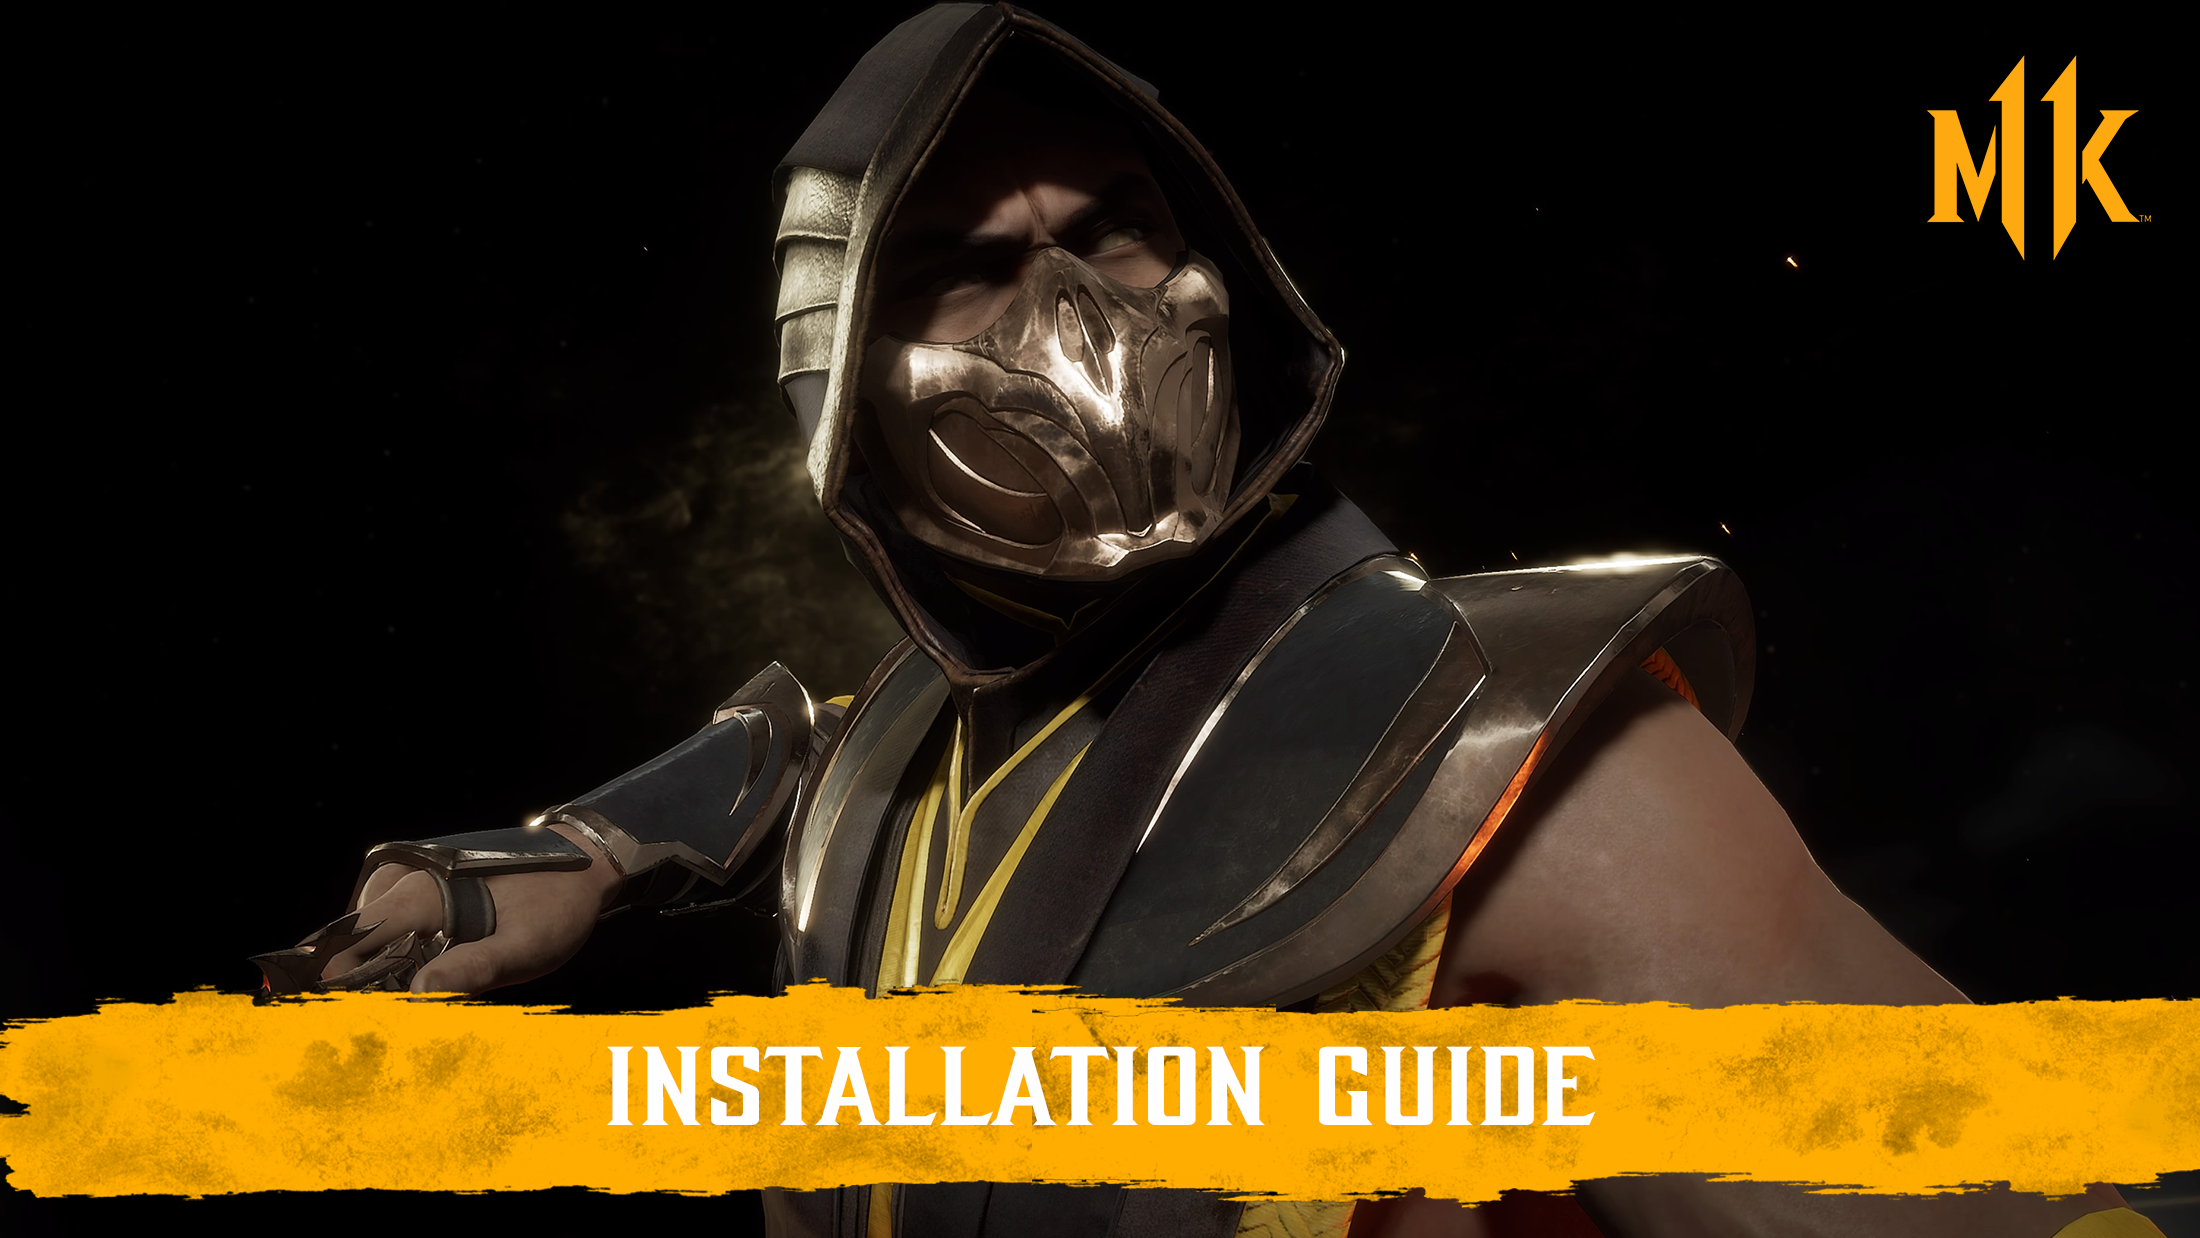 TECHNICAL__INSTALL_GUIDE.png